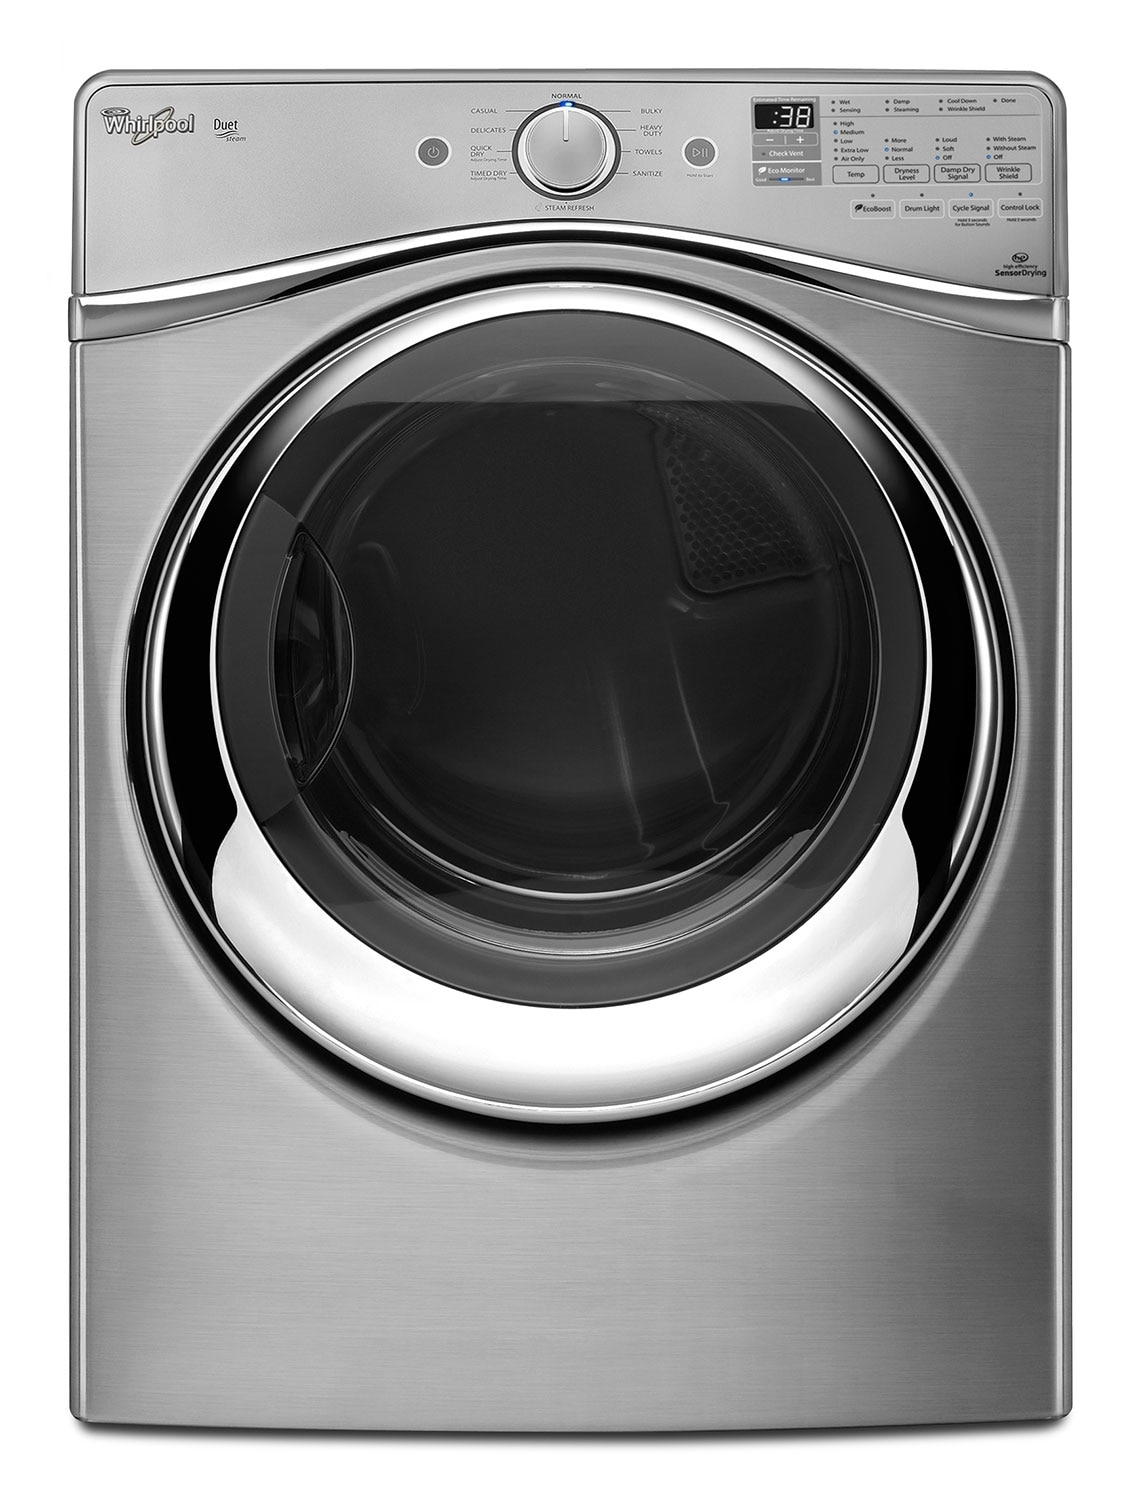 Washers and Dryers - Whirlpool Dryer (7.4 Cu. Ft.) YWED95HEDU